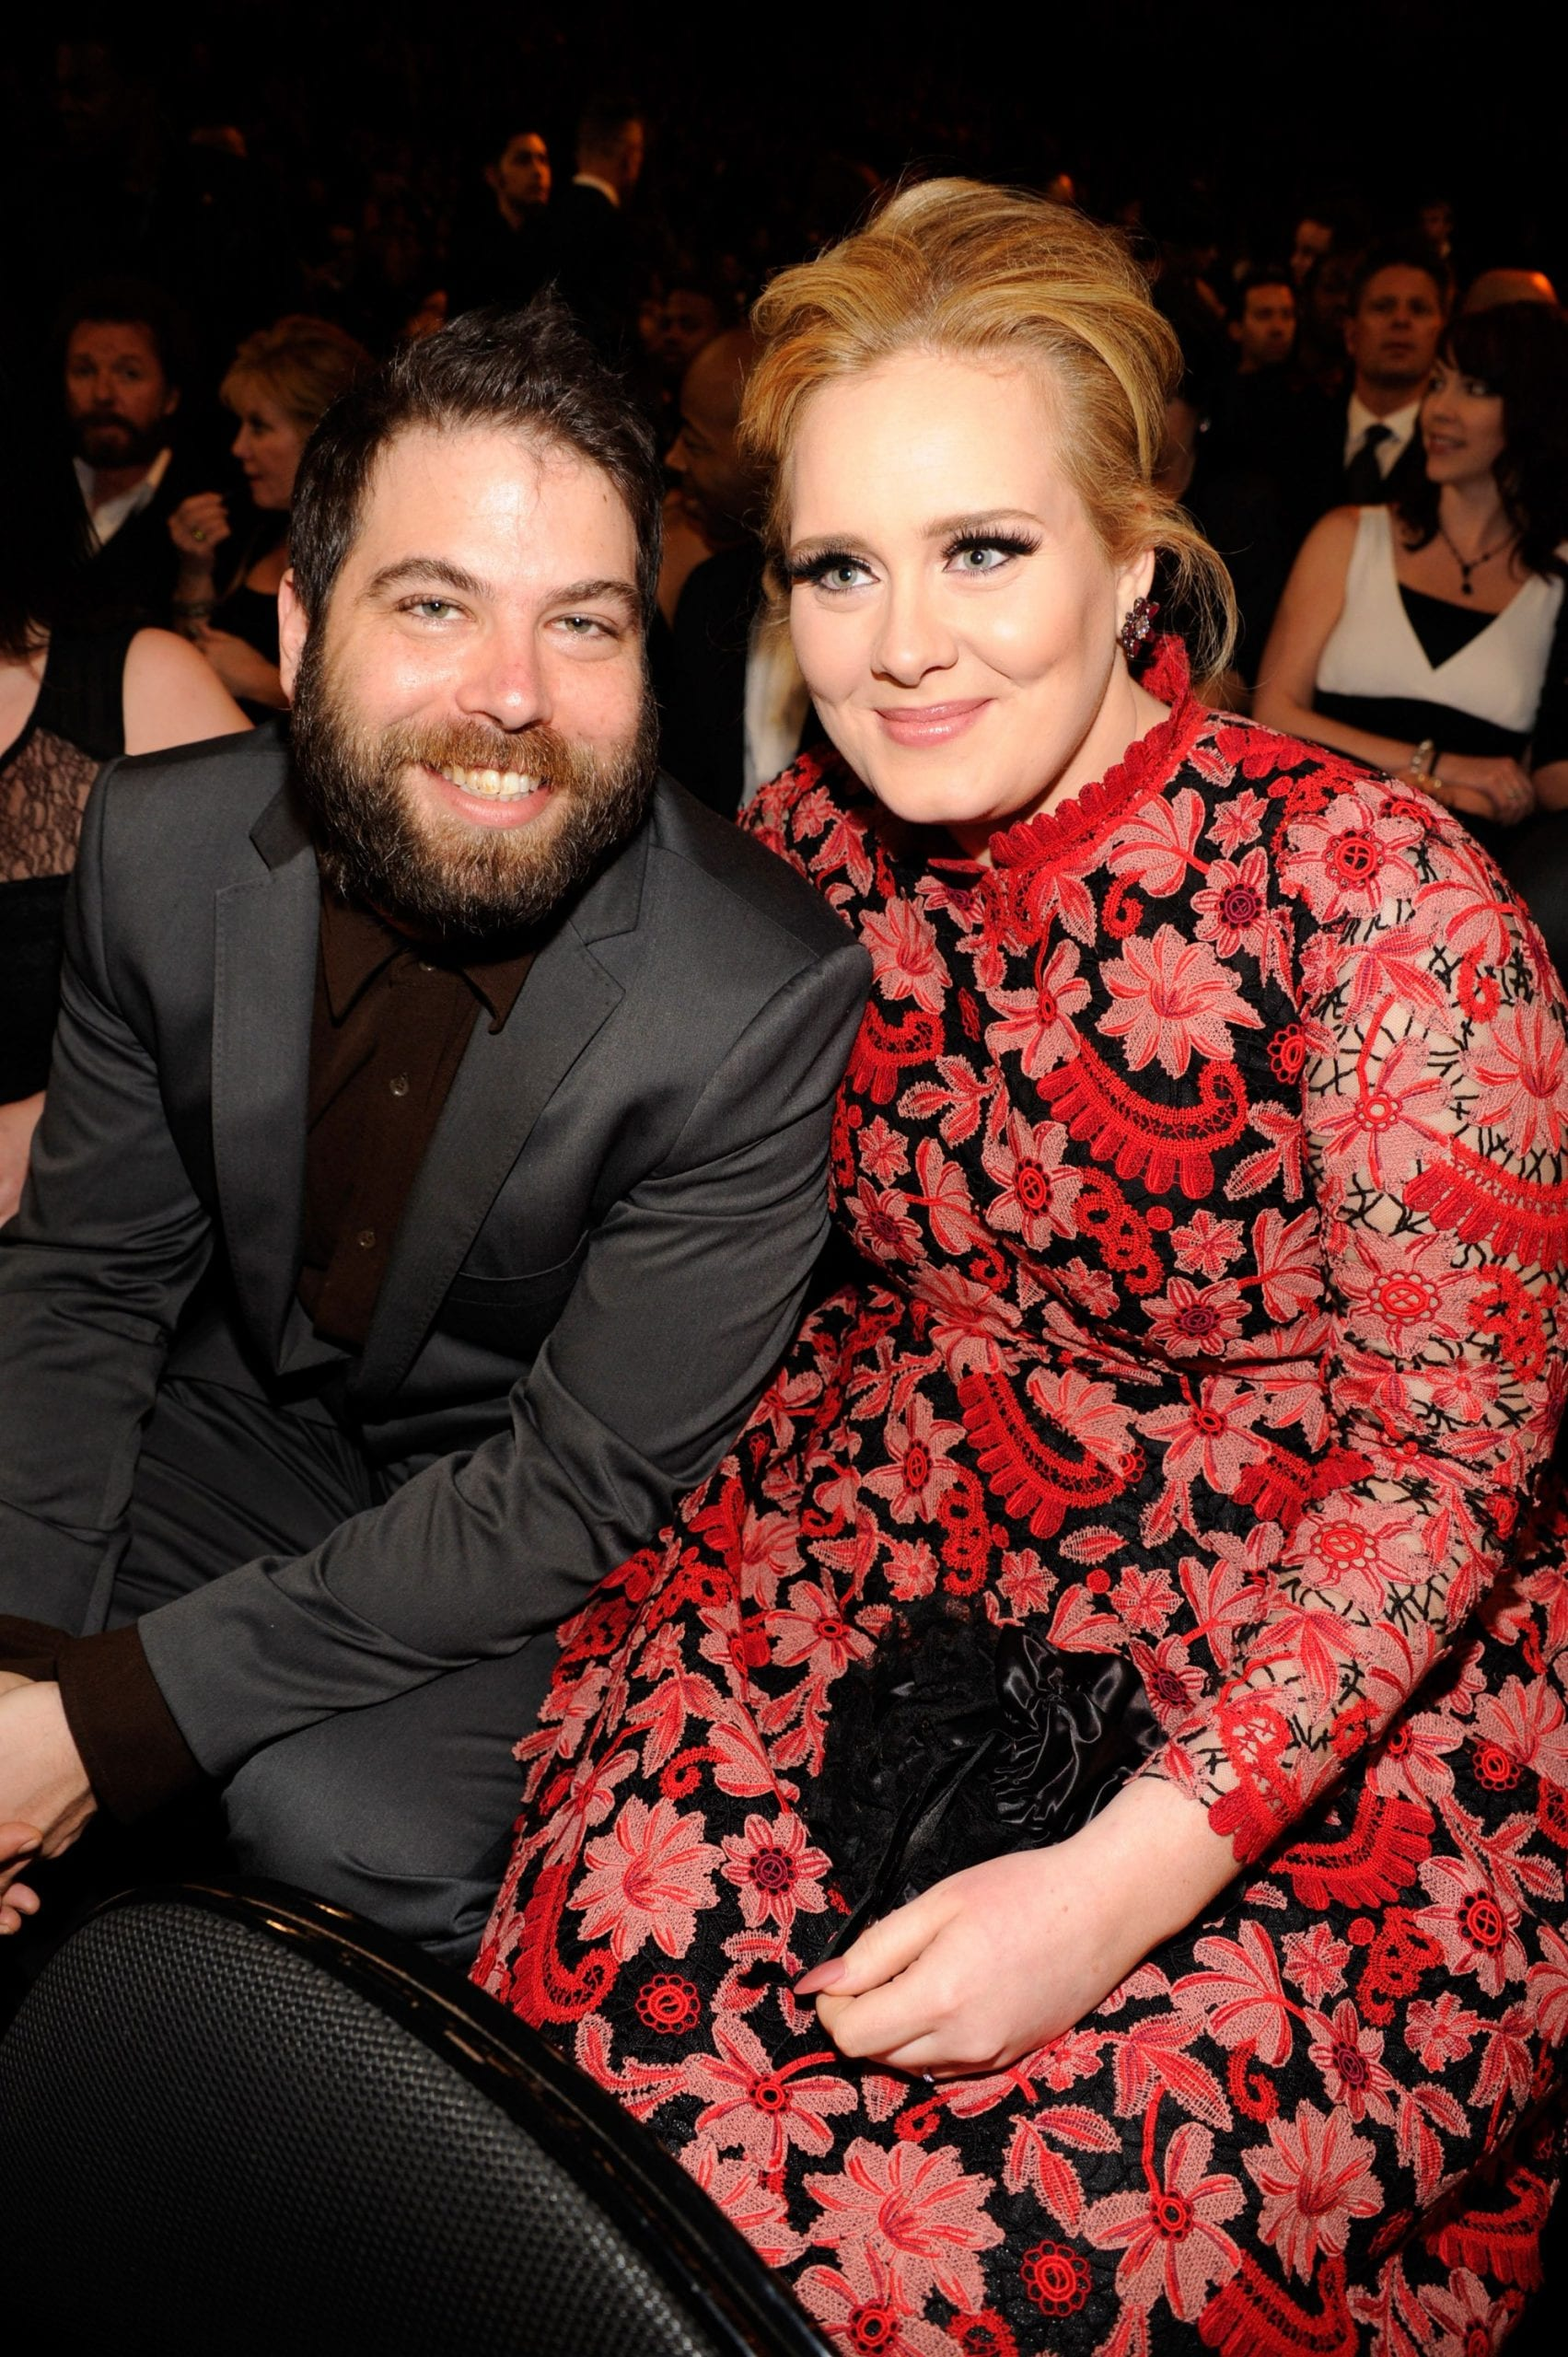 Who Is Adele Dating?